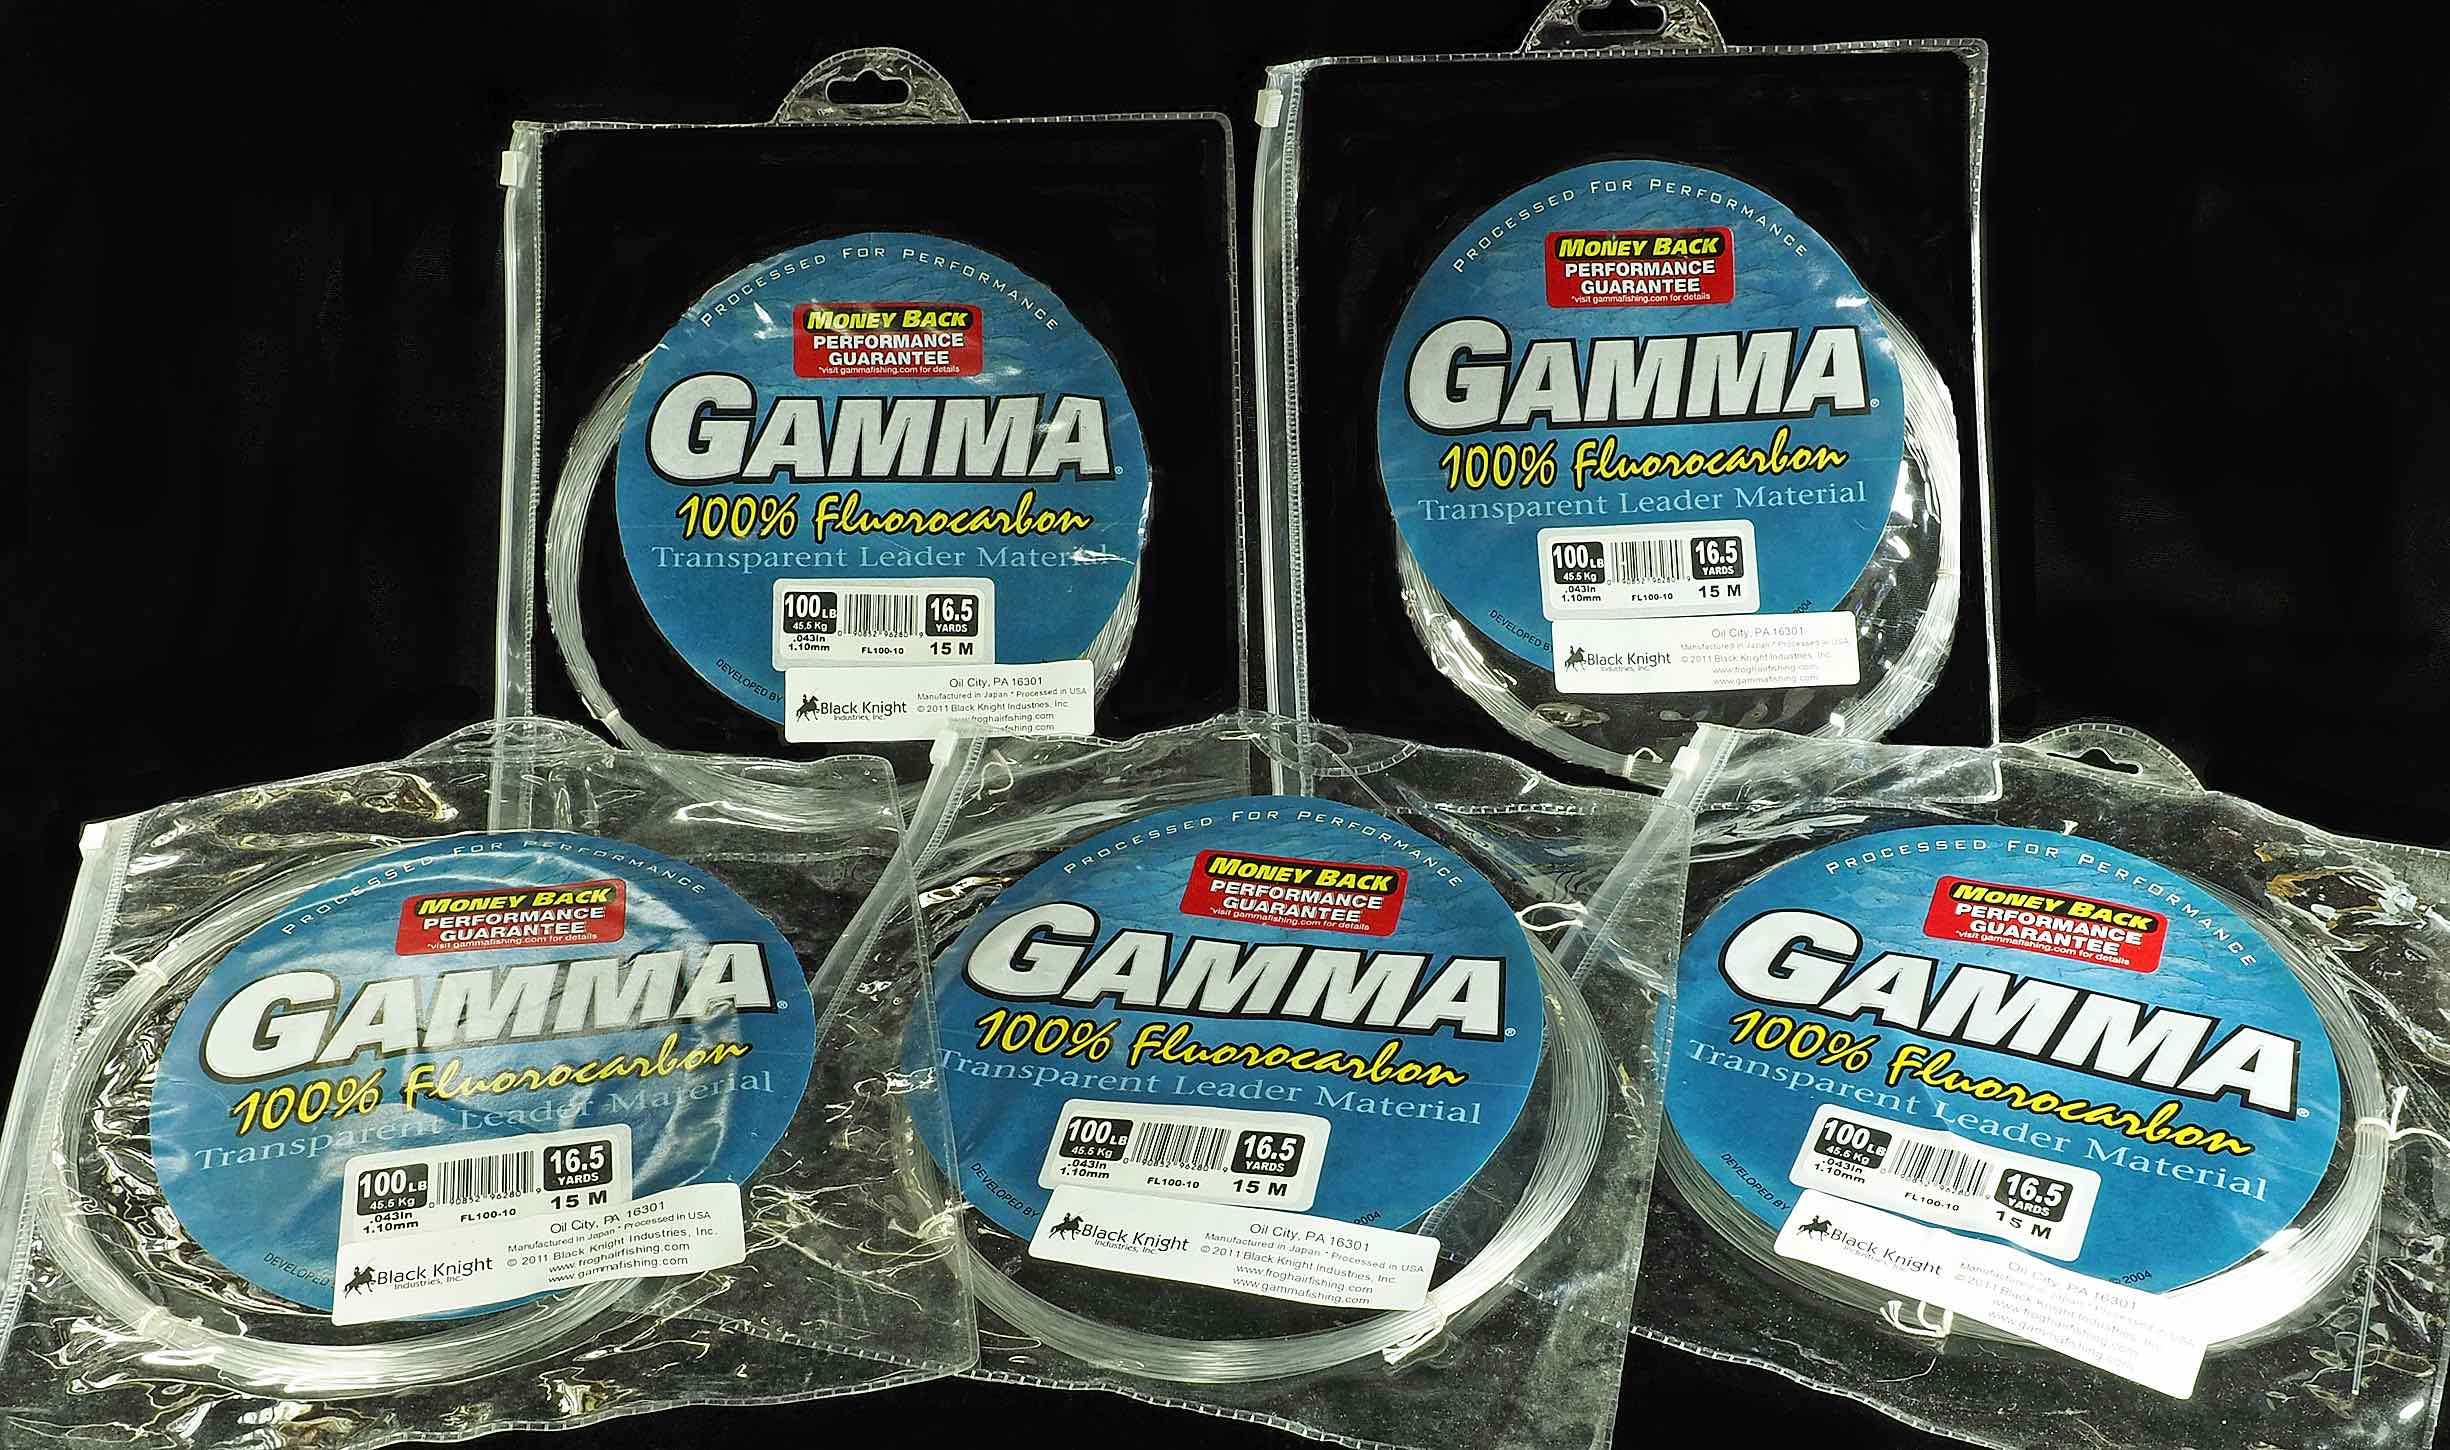 GAMMA Transparent Leader ​100% Fluorocarbon Line - 100lb Test